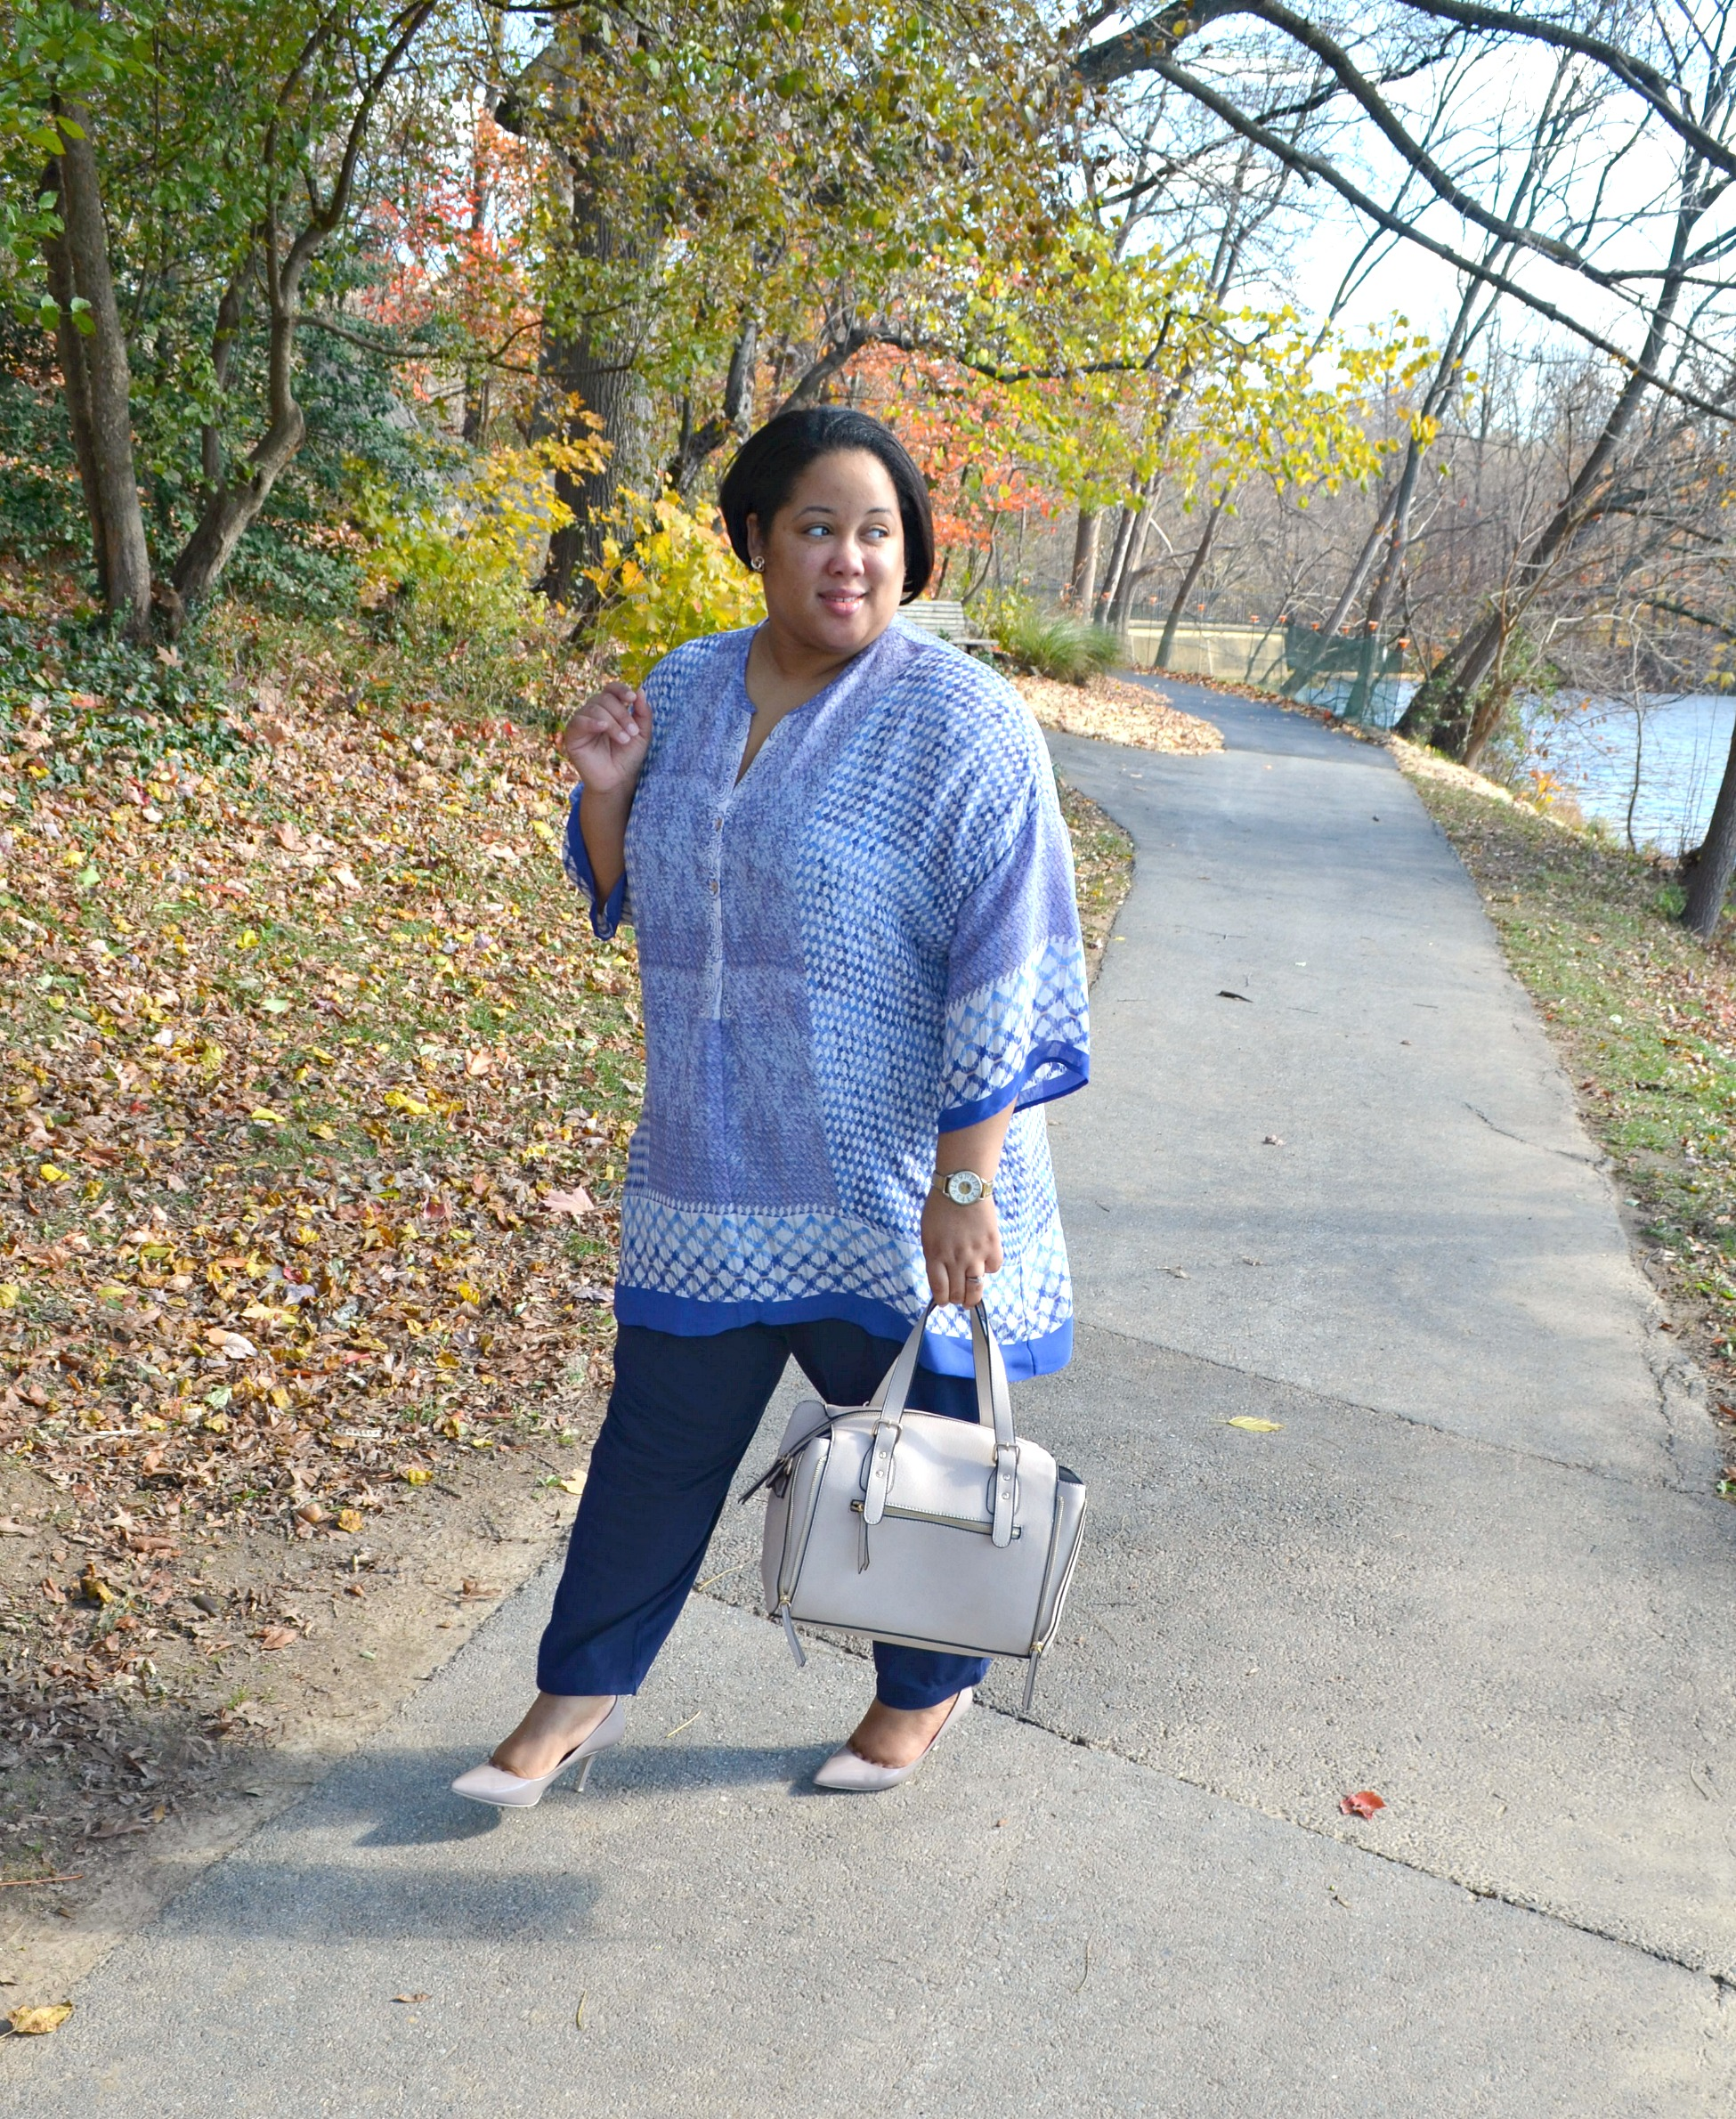 Fall Fashion - tunics and capes